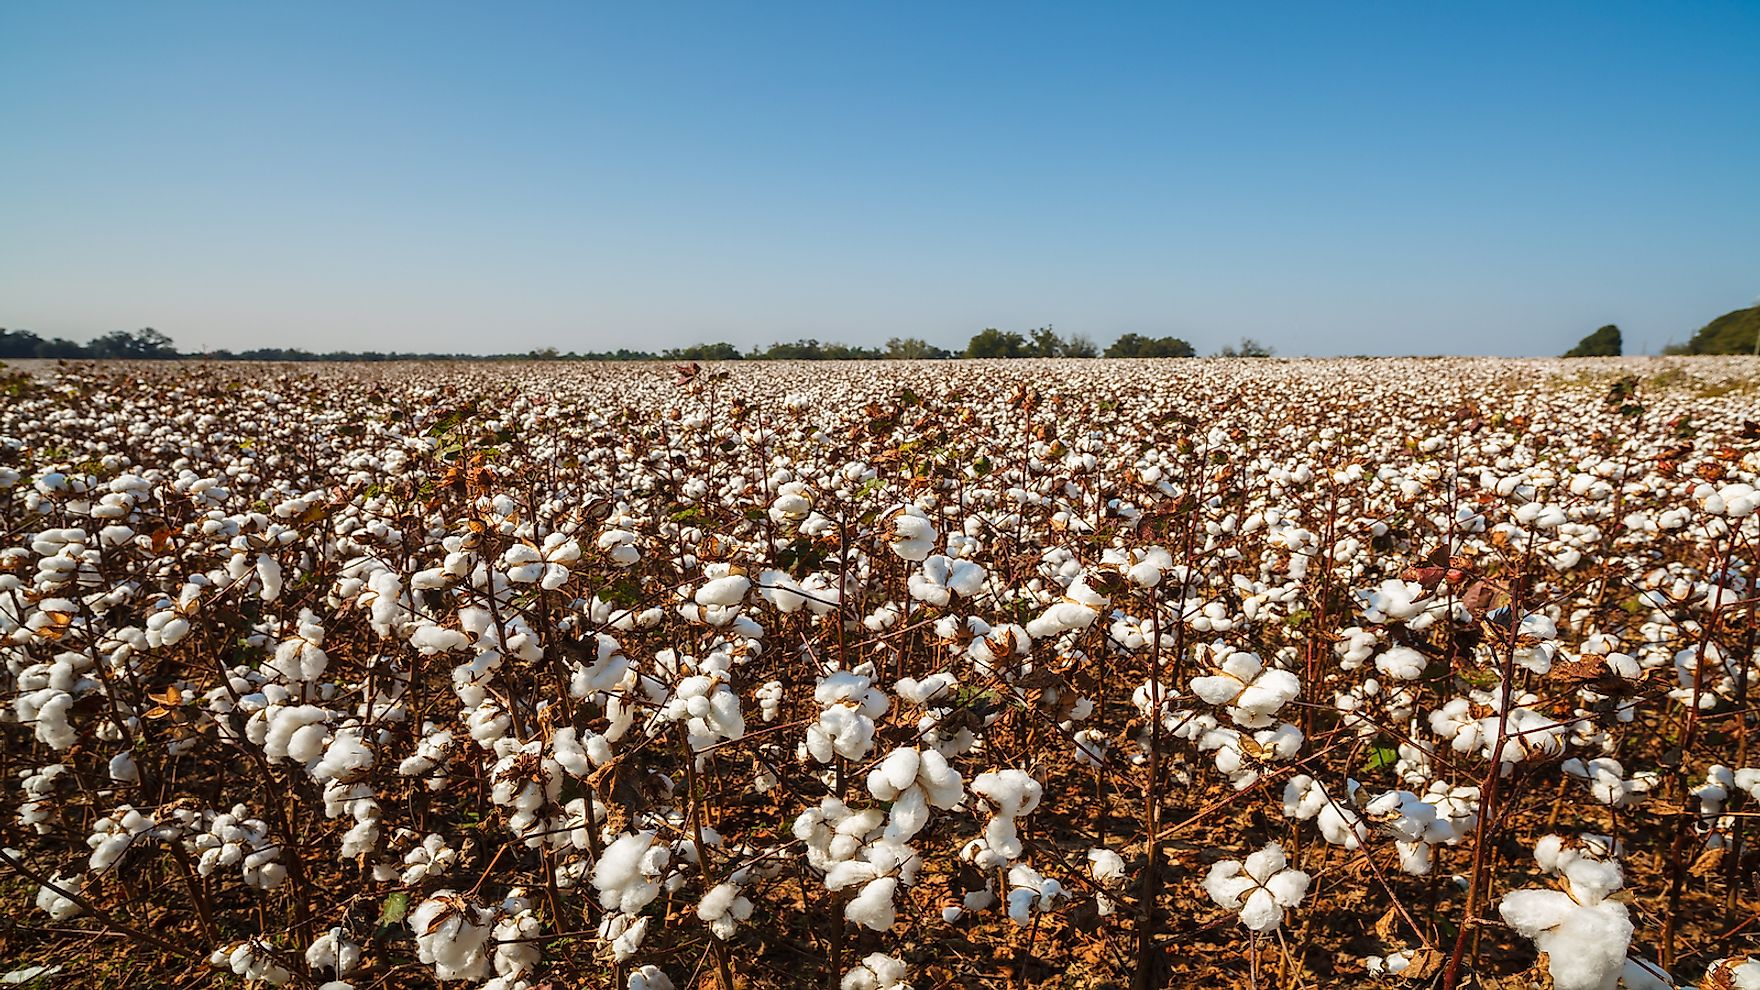 Cotton is one of the major crops grown in Alabama.